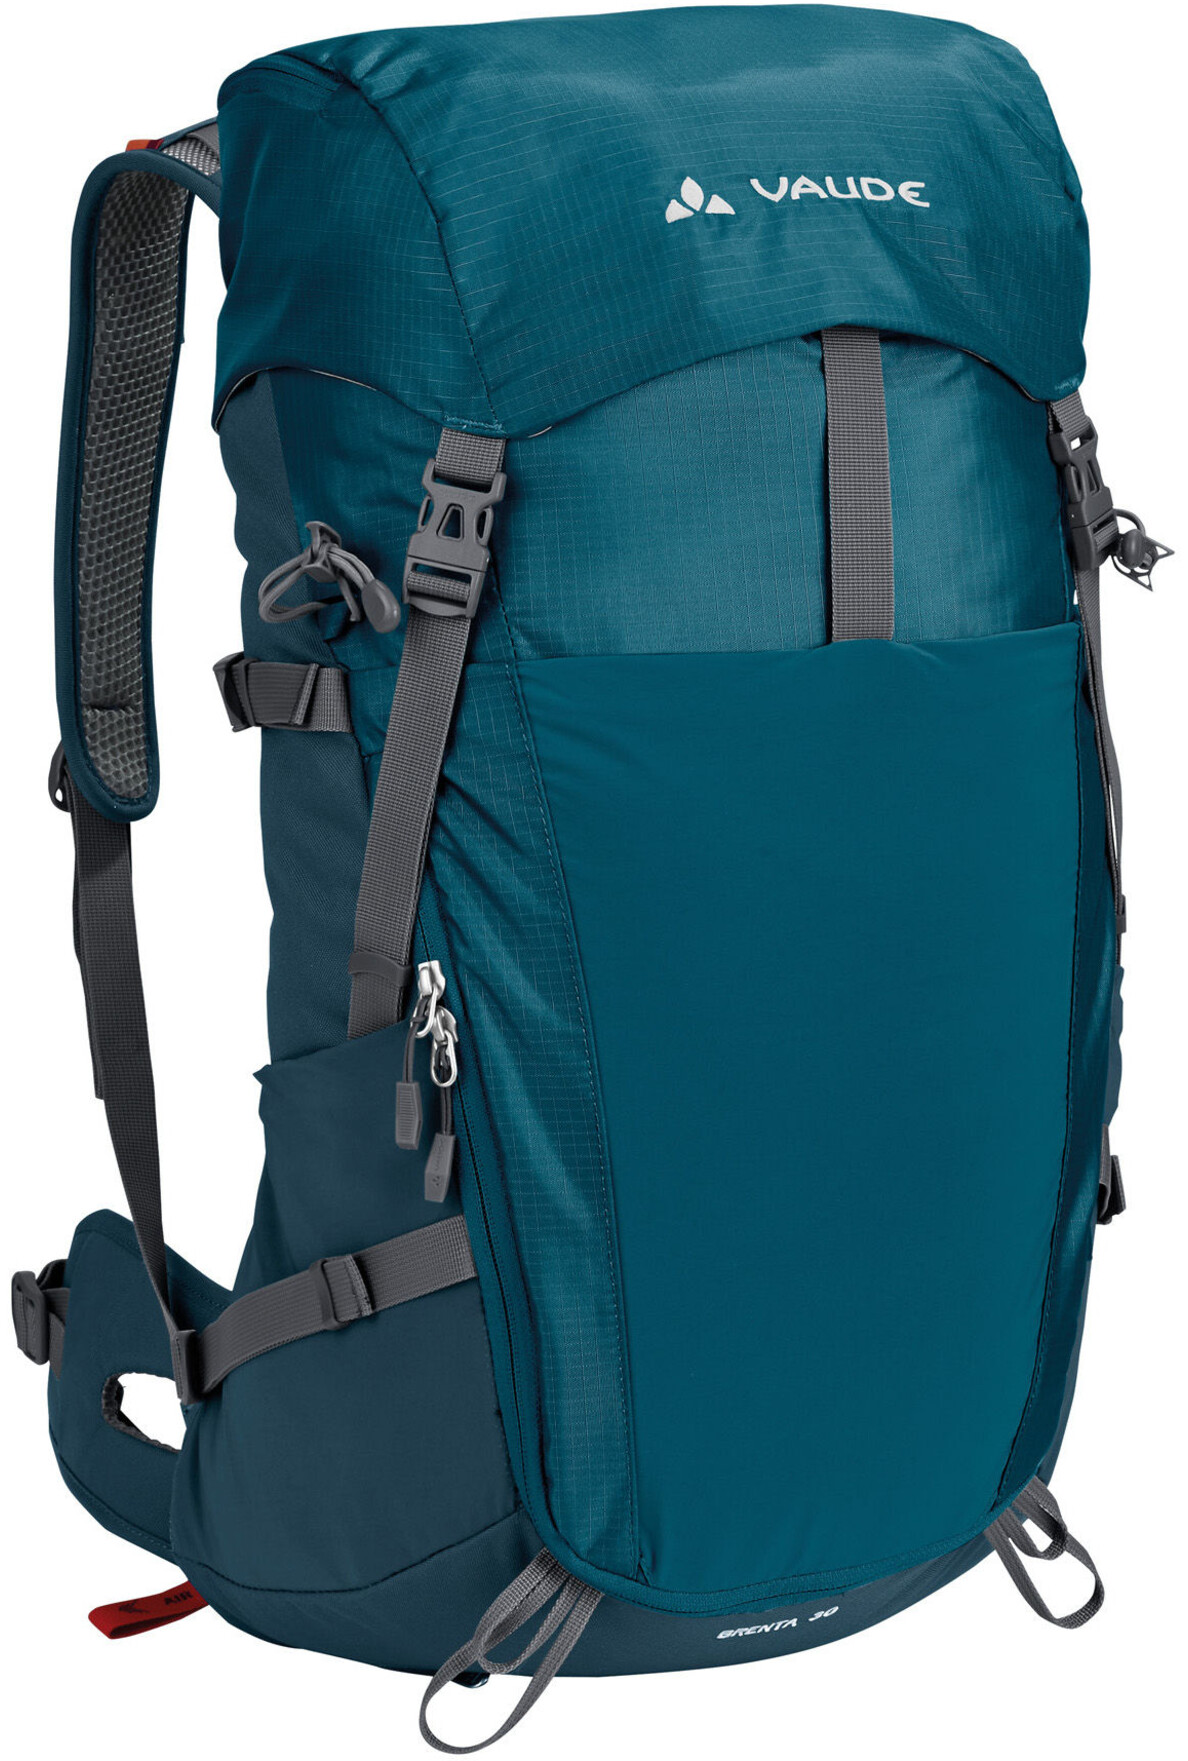 VAUDE Brenta 25 Backpack blue sapphire - addnature.com 979c57afb87f4